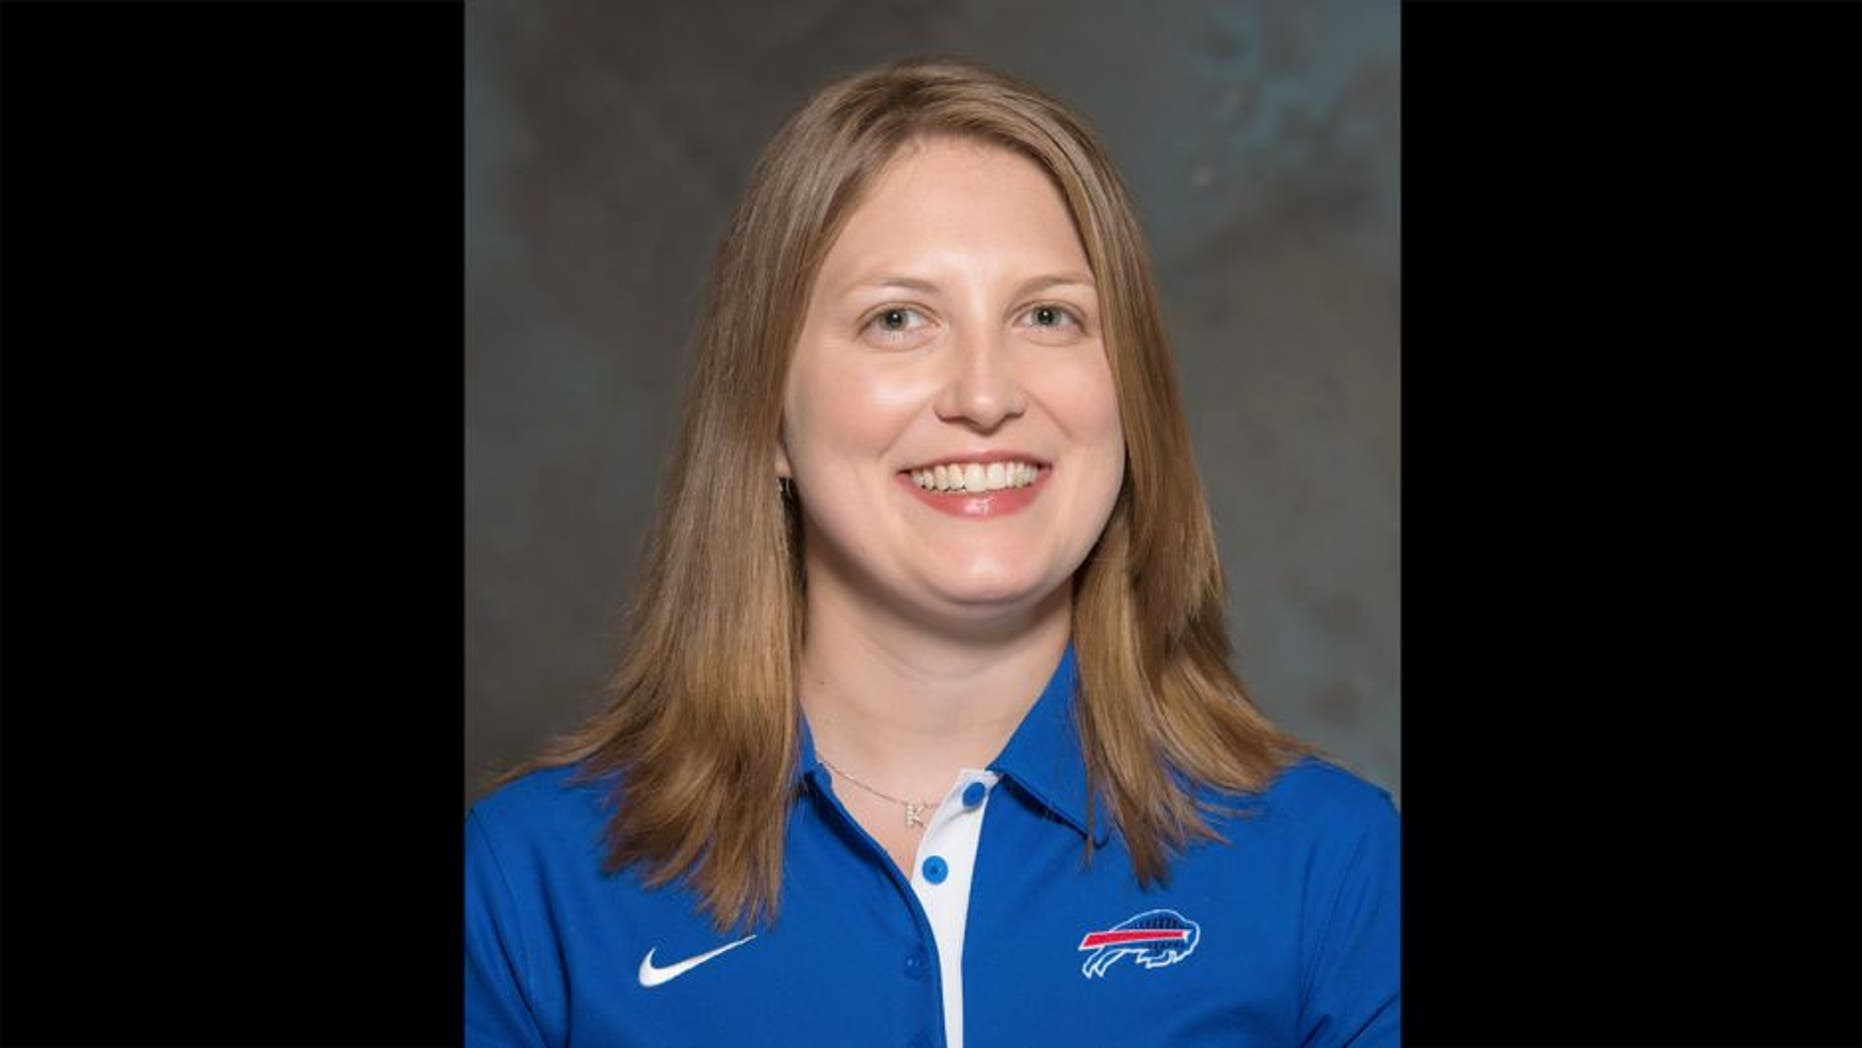 FILE - A May 2015 photo shows Kathryn Smith of the Buffalo Bills NFL football team. The Bills promoted Smith to be their special teams quality control coach, making her the first full-time female member of an NFL coaching staff. The team announced the move in a release Wednesday night, Jan. 20, 2016. Smith was an administrative assistant this season for Bills assistant coaches under Rex Ryan, with whom she has worked for seven years. (AP Photo/File)